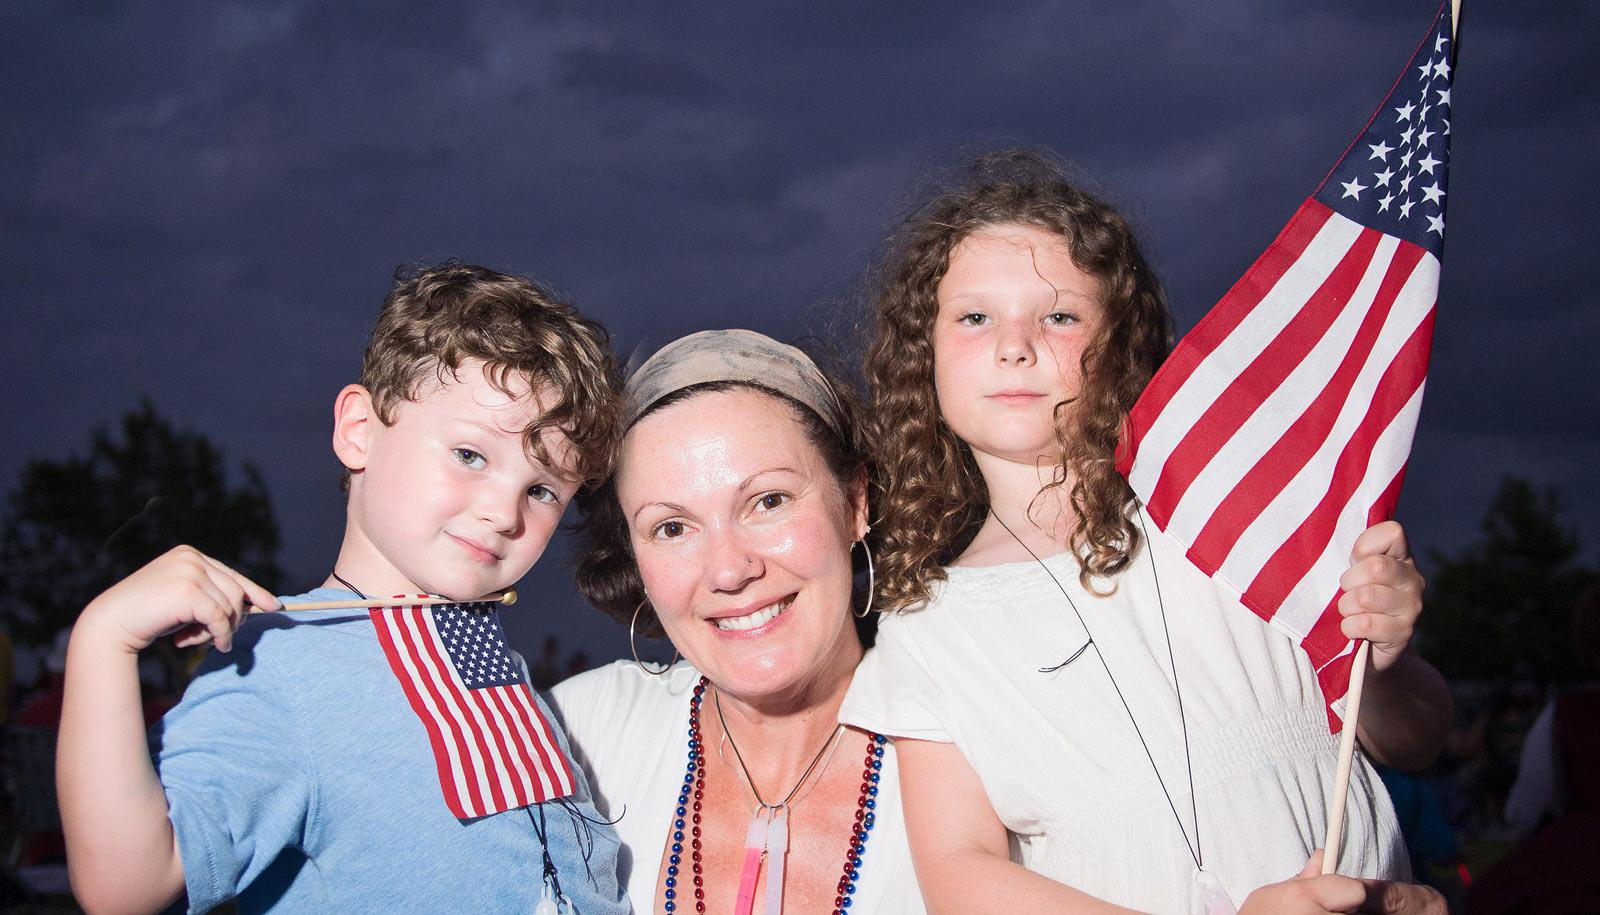 woman and two children with US flags